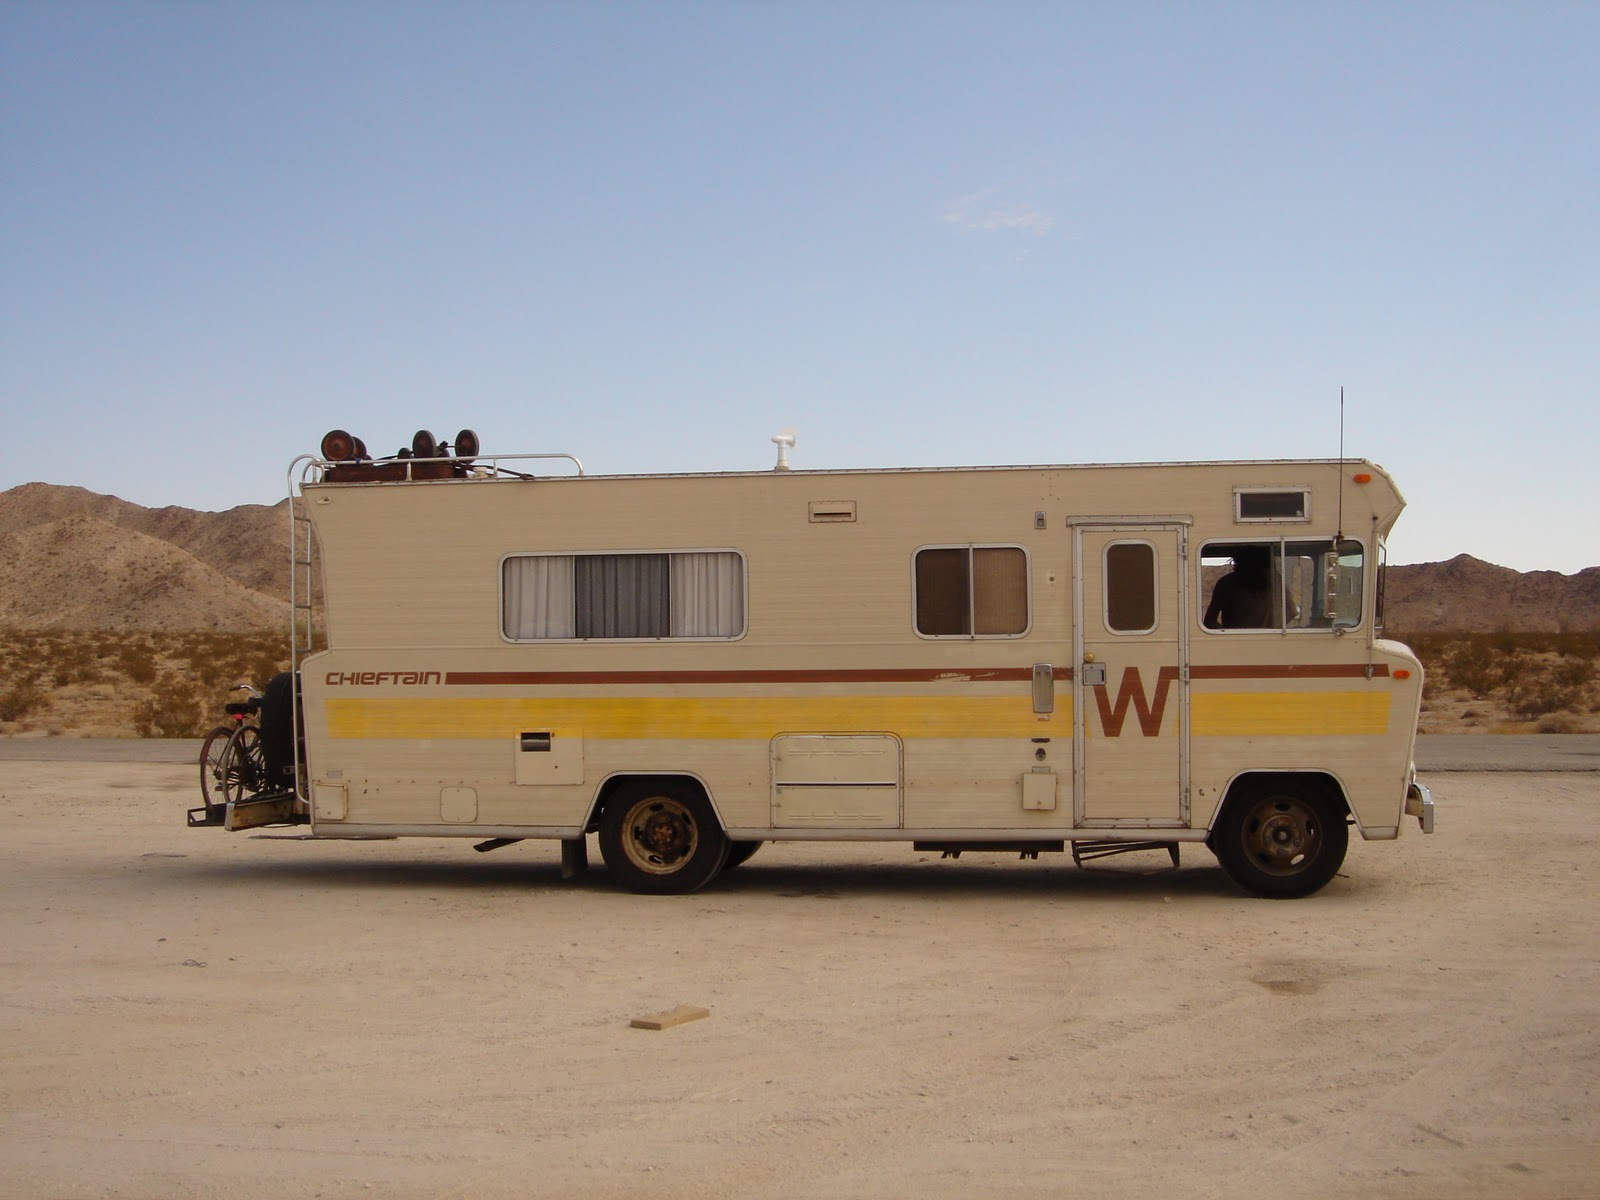 winnebago guys 25 reasons we bought a winnebago brave a big, big, big step up from our last rv  wow, you guys have your whole lives ahead of you and look how far you've come.